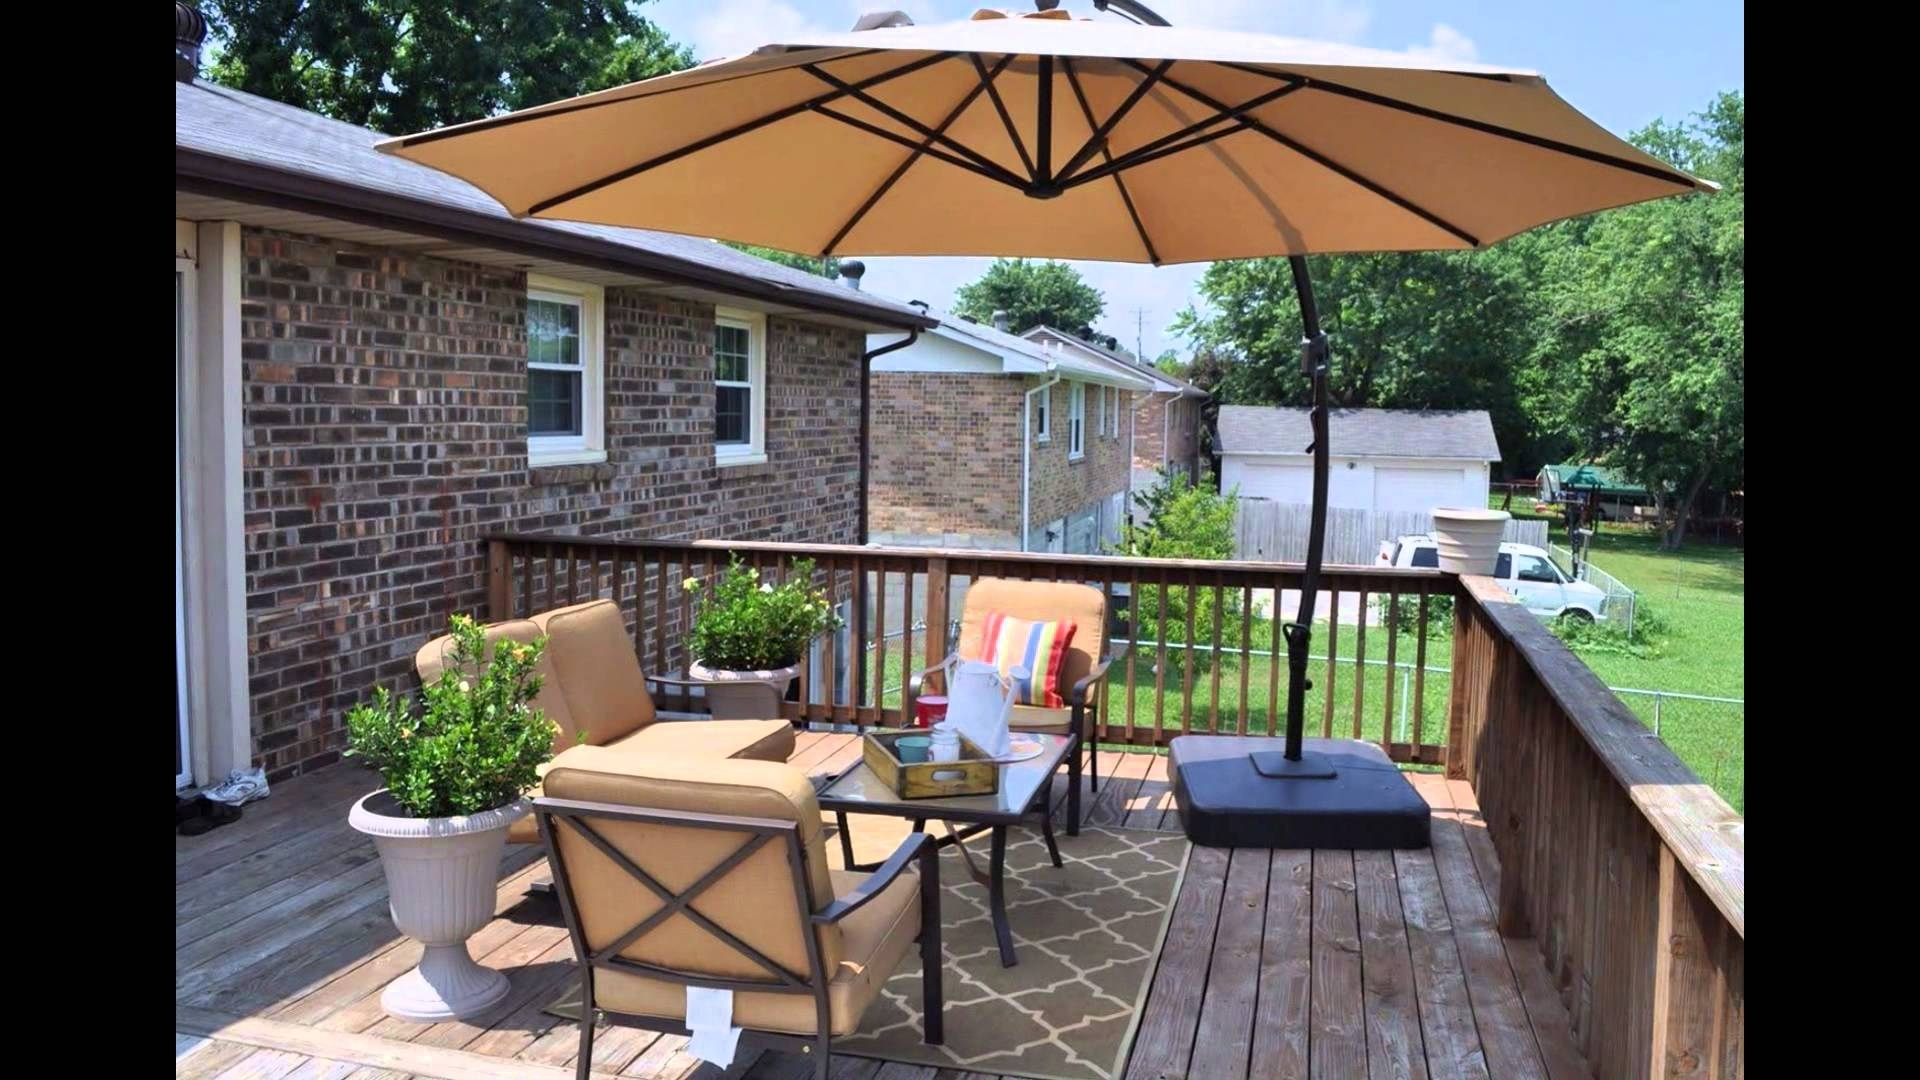 Lowes Patio Furniture – Youtube With Regard To Well Liked Lowes Patio Umbrellas (View 8 of 20)